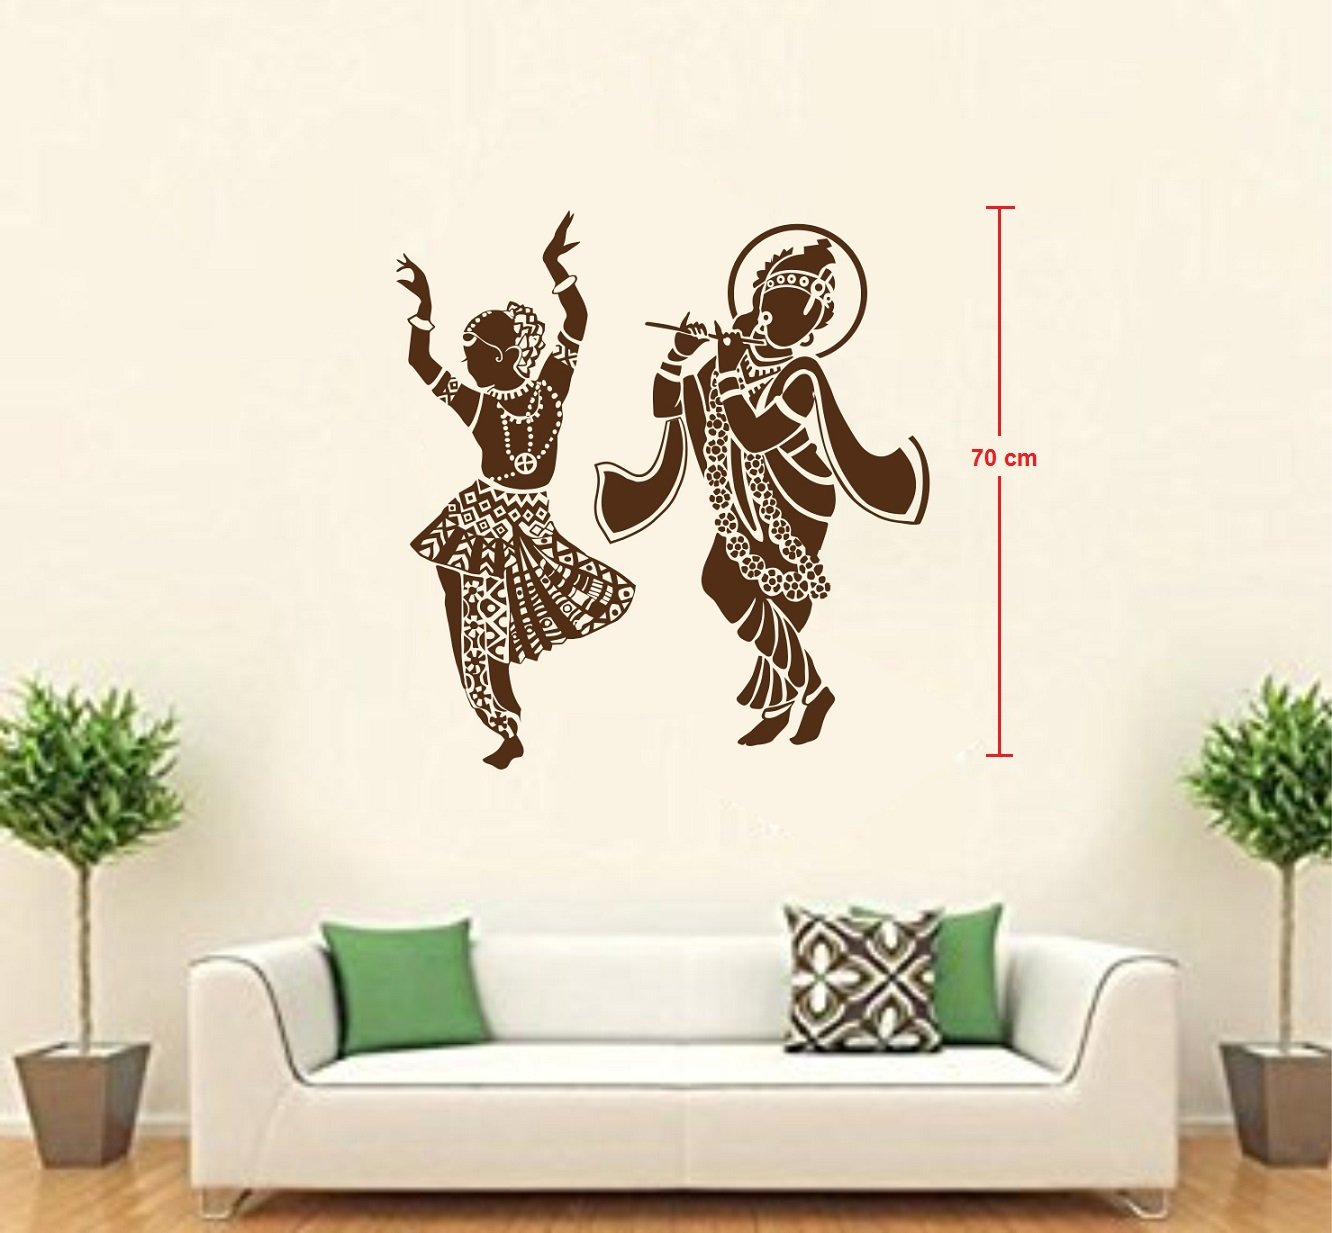 Wall stickers radha krishna - Buy Asmi Collections Wall Stickers Dancing God Radha Krishna Brown Online At Low Prices In India Amazon In